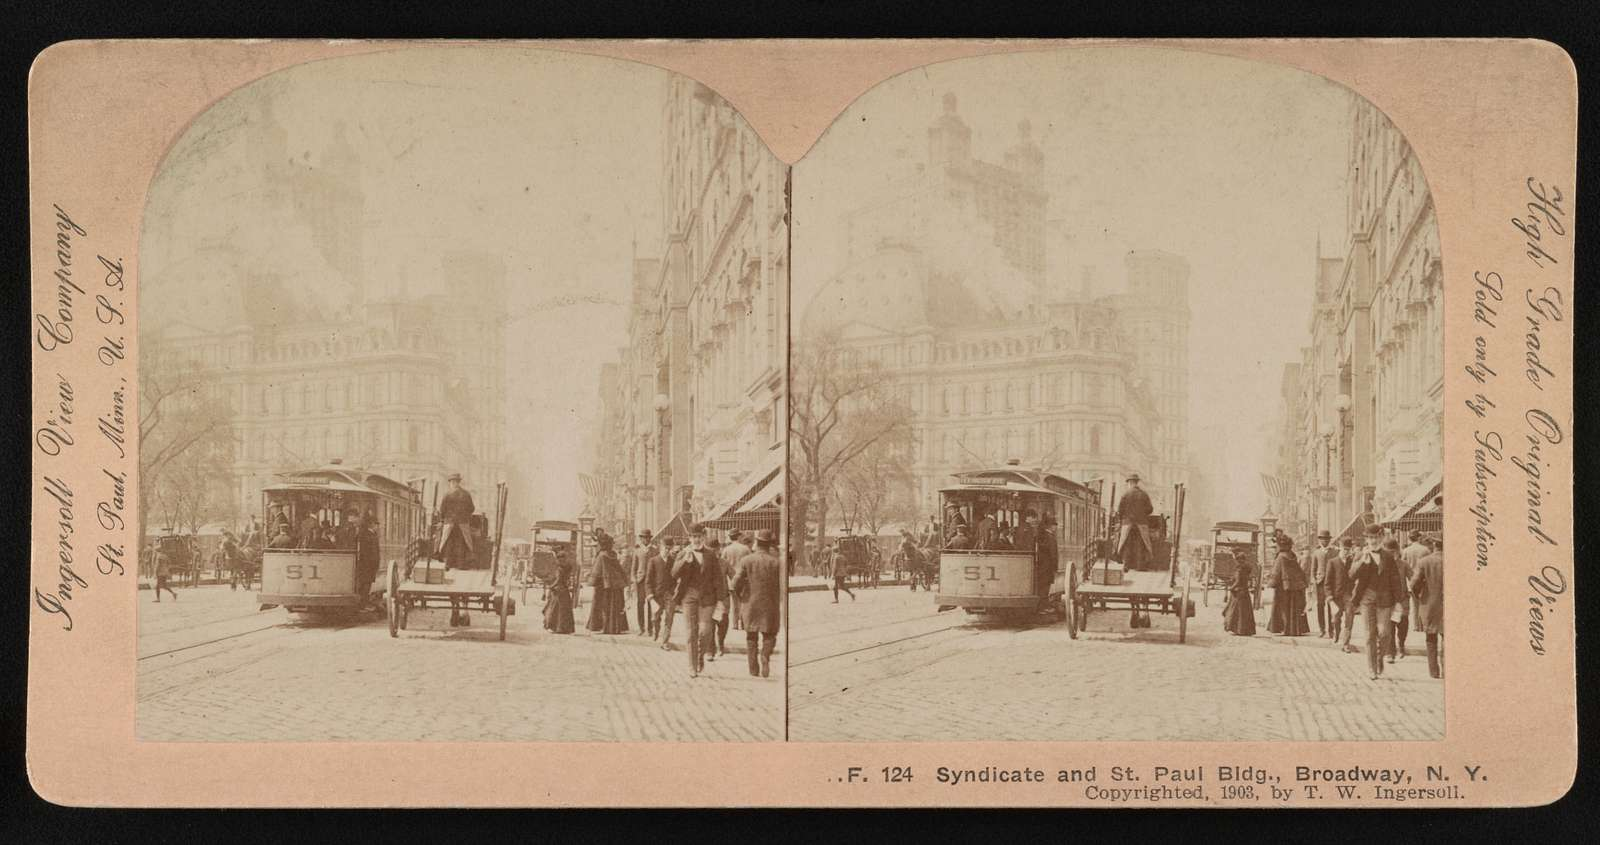 Syndicate and St. Paul Bldg., Broadway, N.Y.